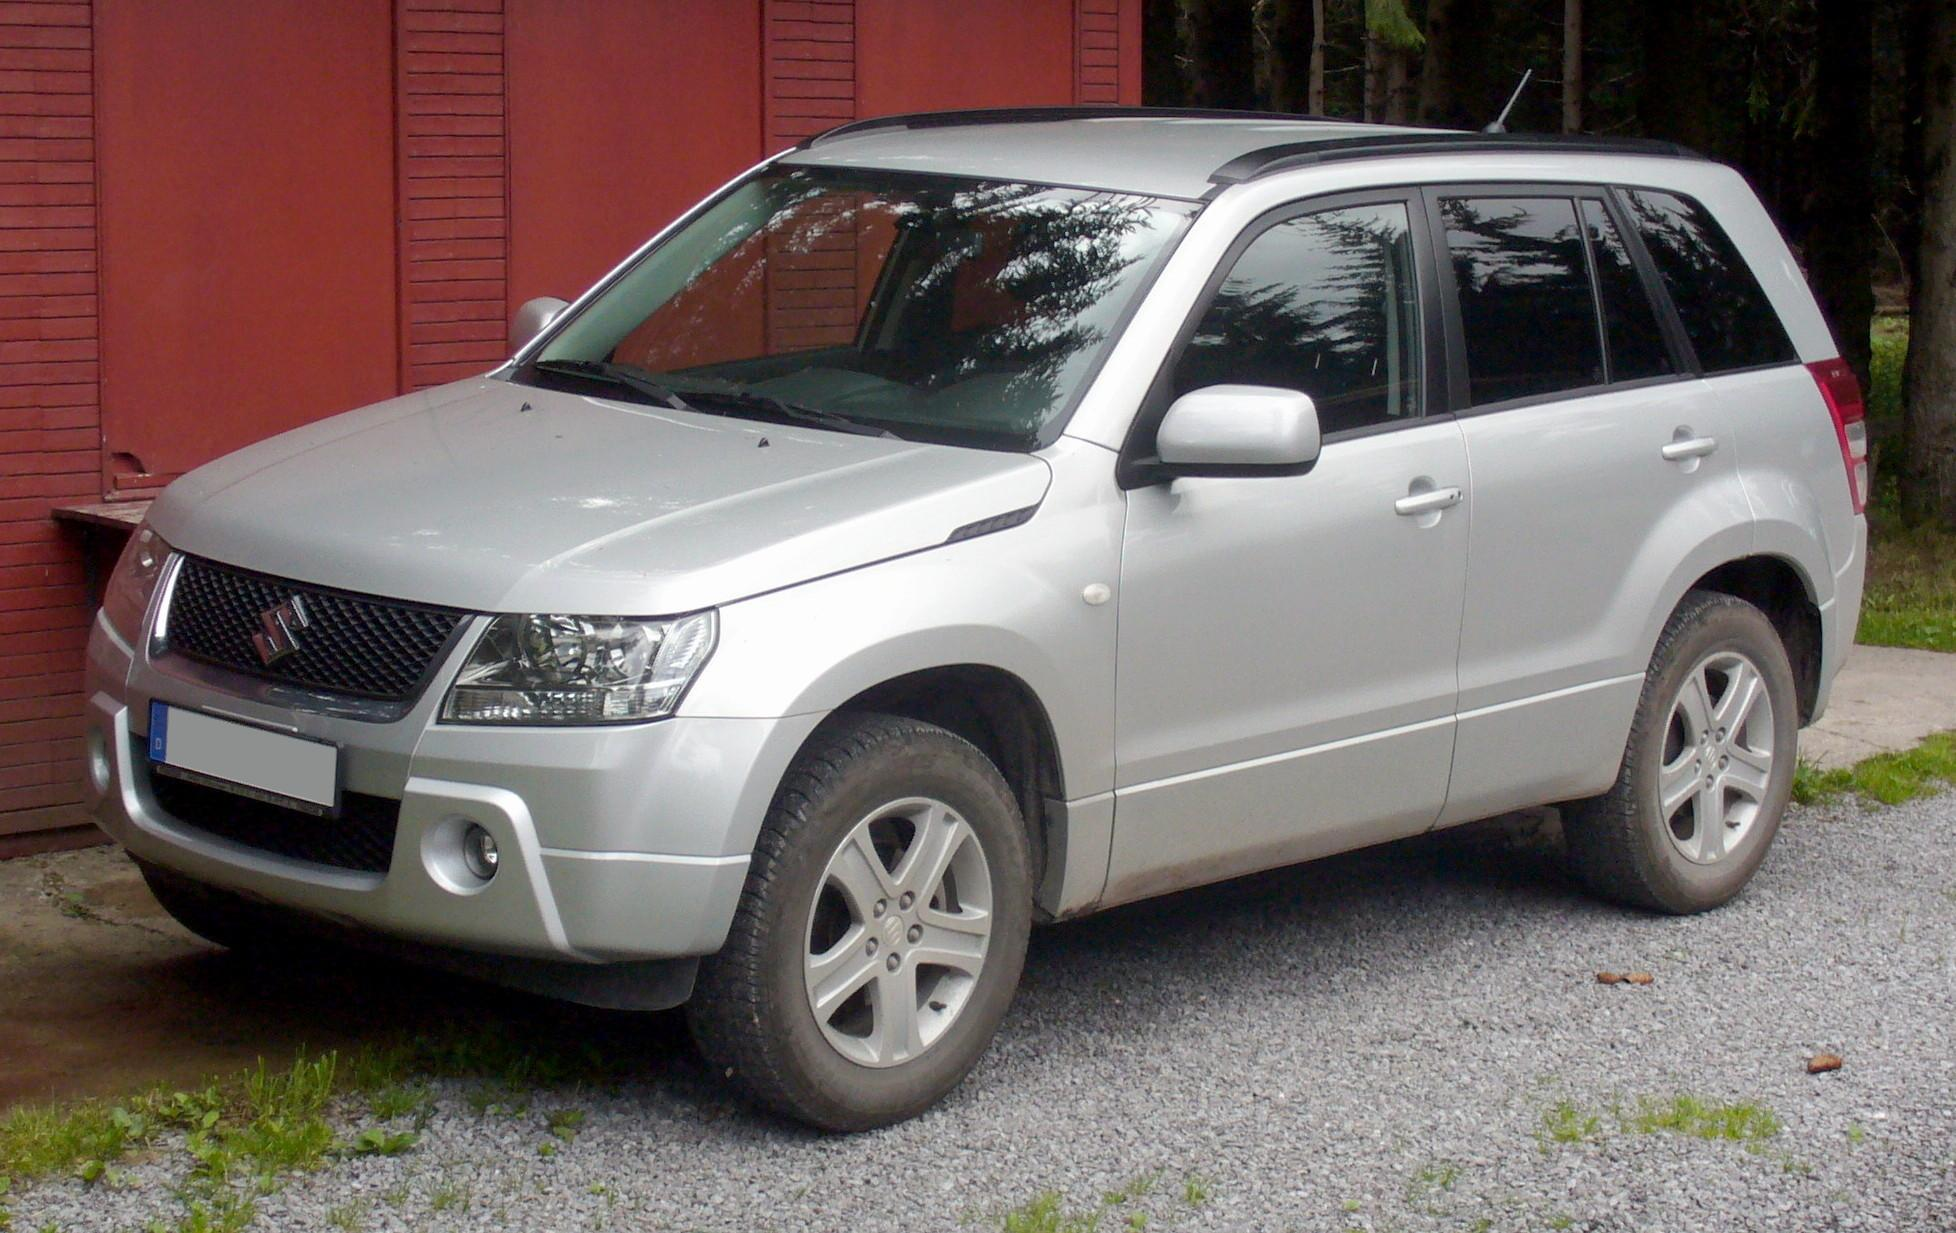 http://upload.wikimedia.org/wikipedia/commons/f/f3/Suzuki_Grand_Vitara_silver.jpg